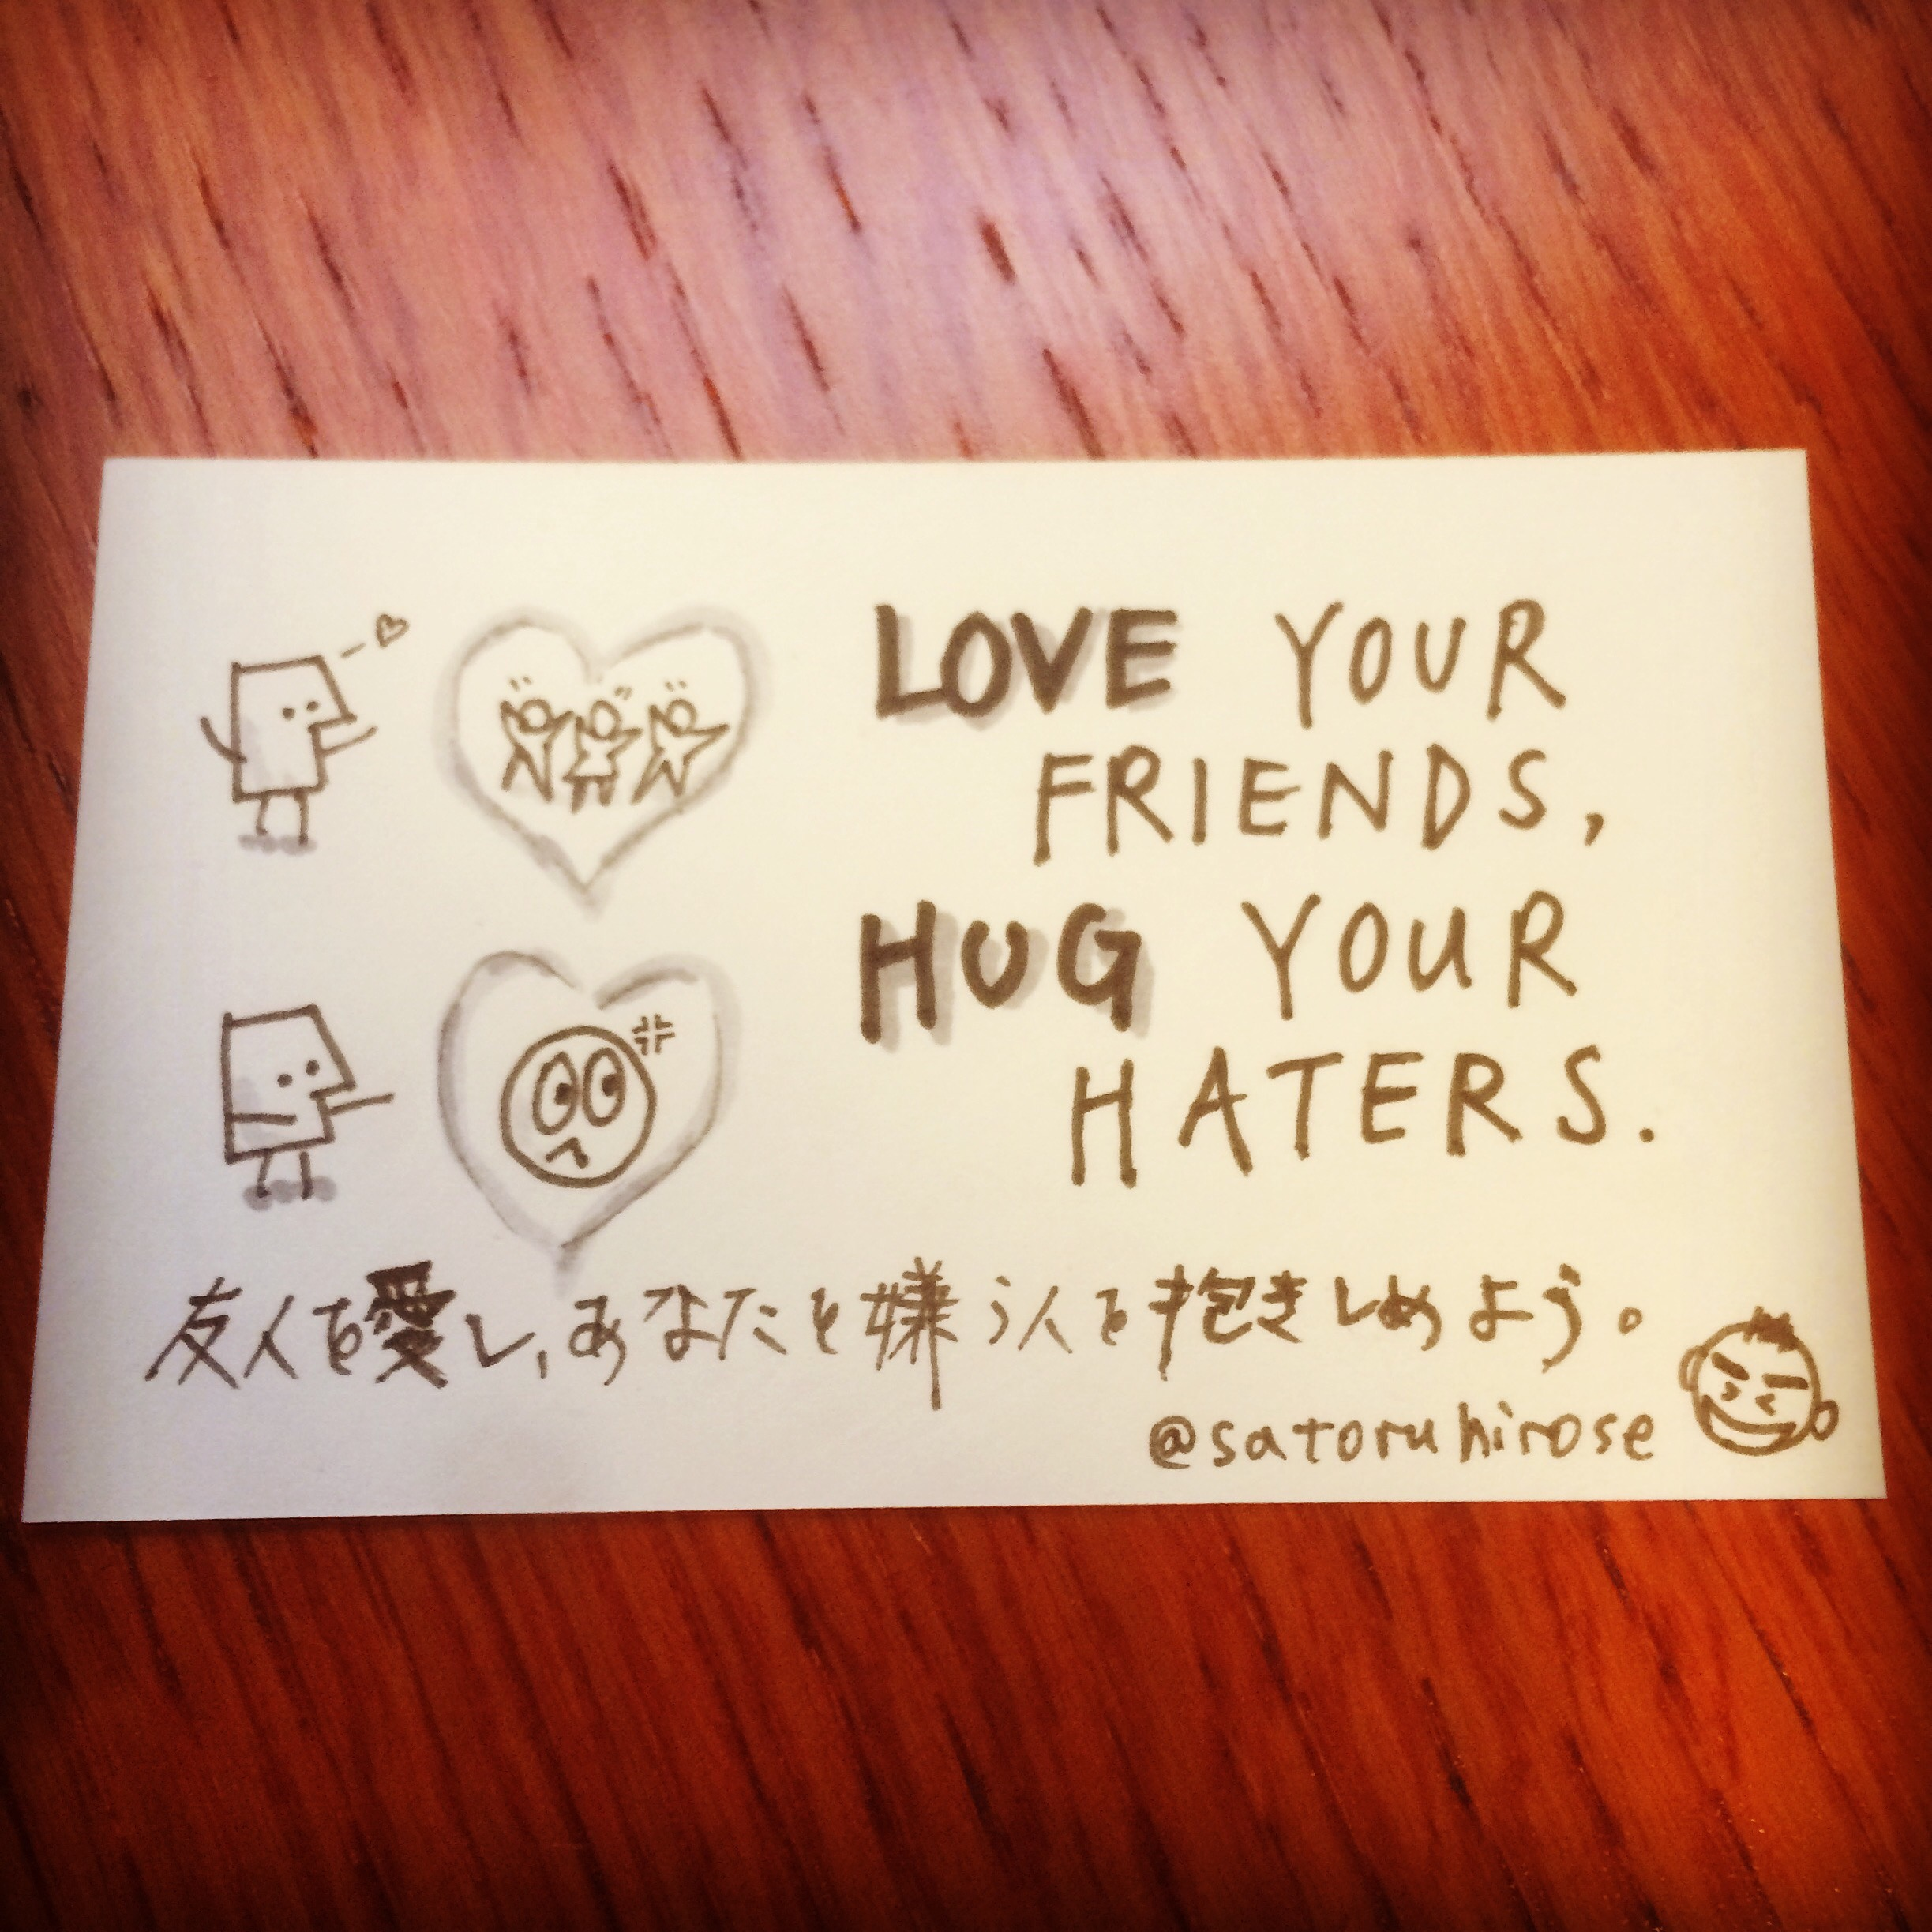 Love your friends, hug your haters.